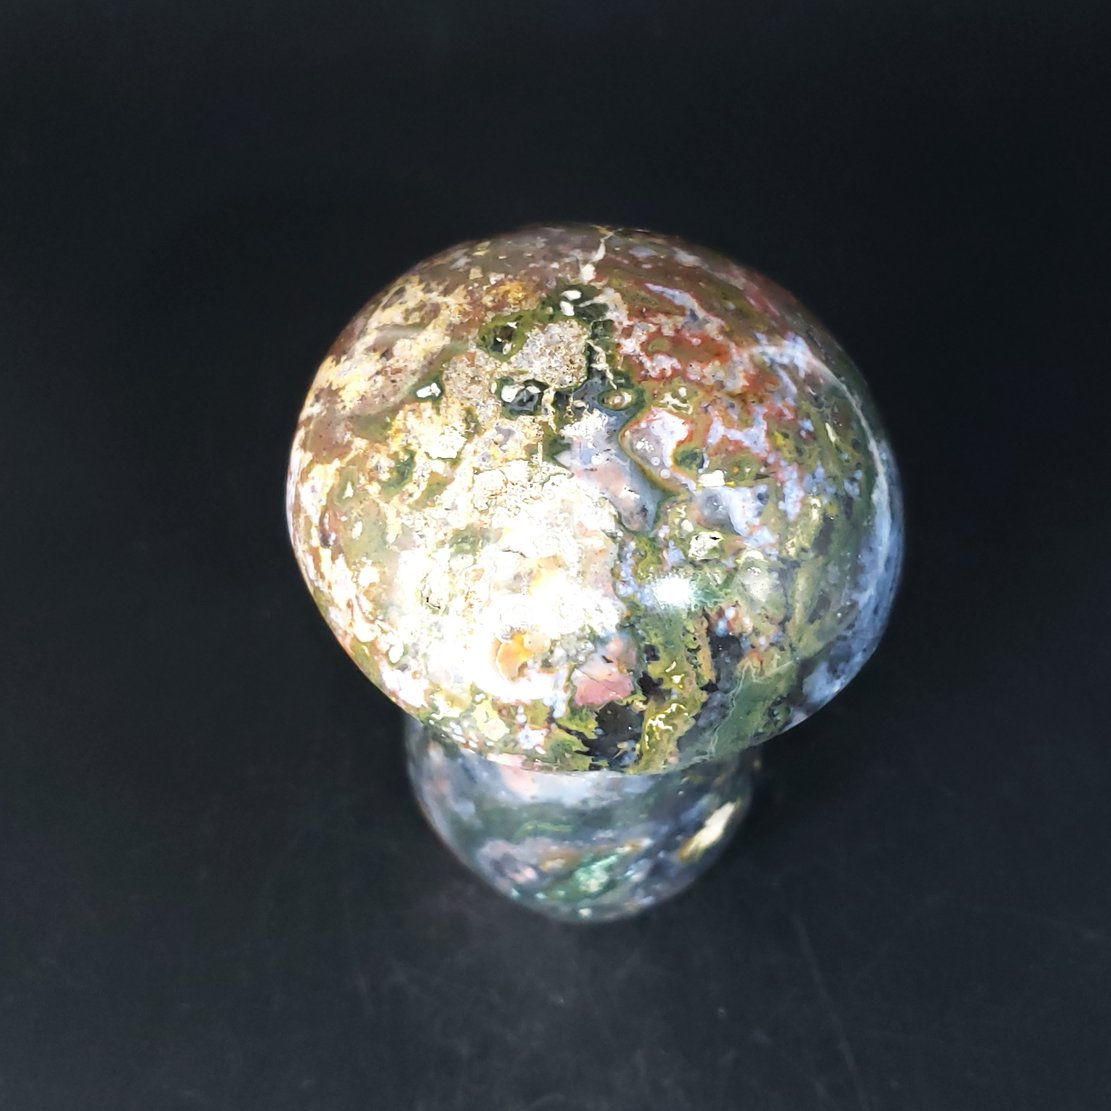 "Moss Agate Mushroom Figurine Carving 100mm 4"" - Elevated Metaphysical"